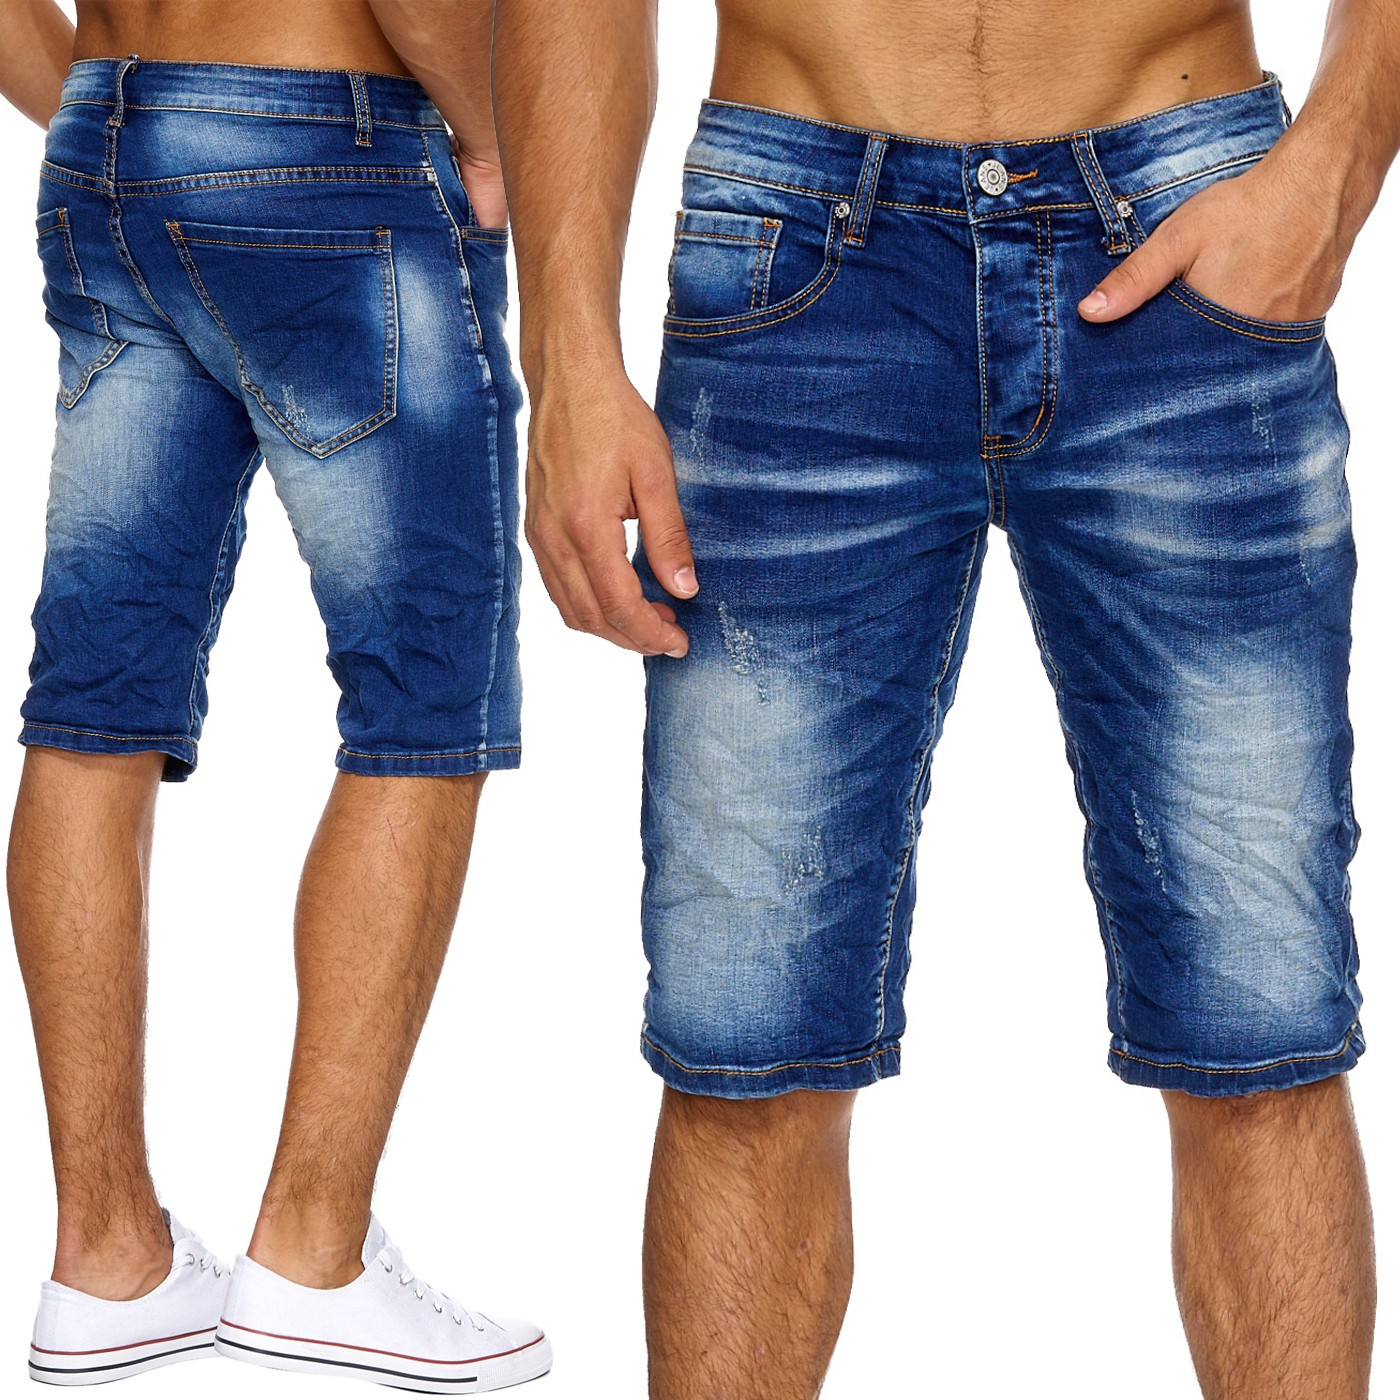 herren jeans shorts stonewashed hose ripped frayed denim. Black Bedroom Furniture Sets. Home Design Ideas